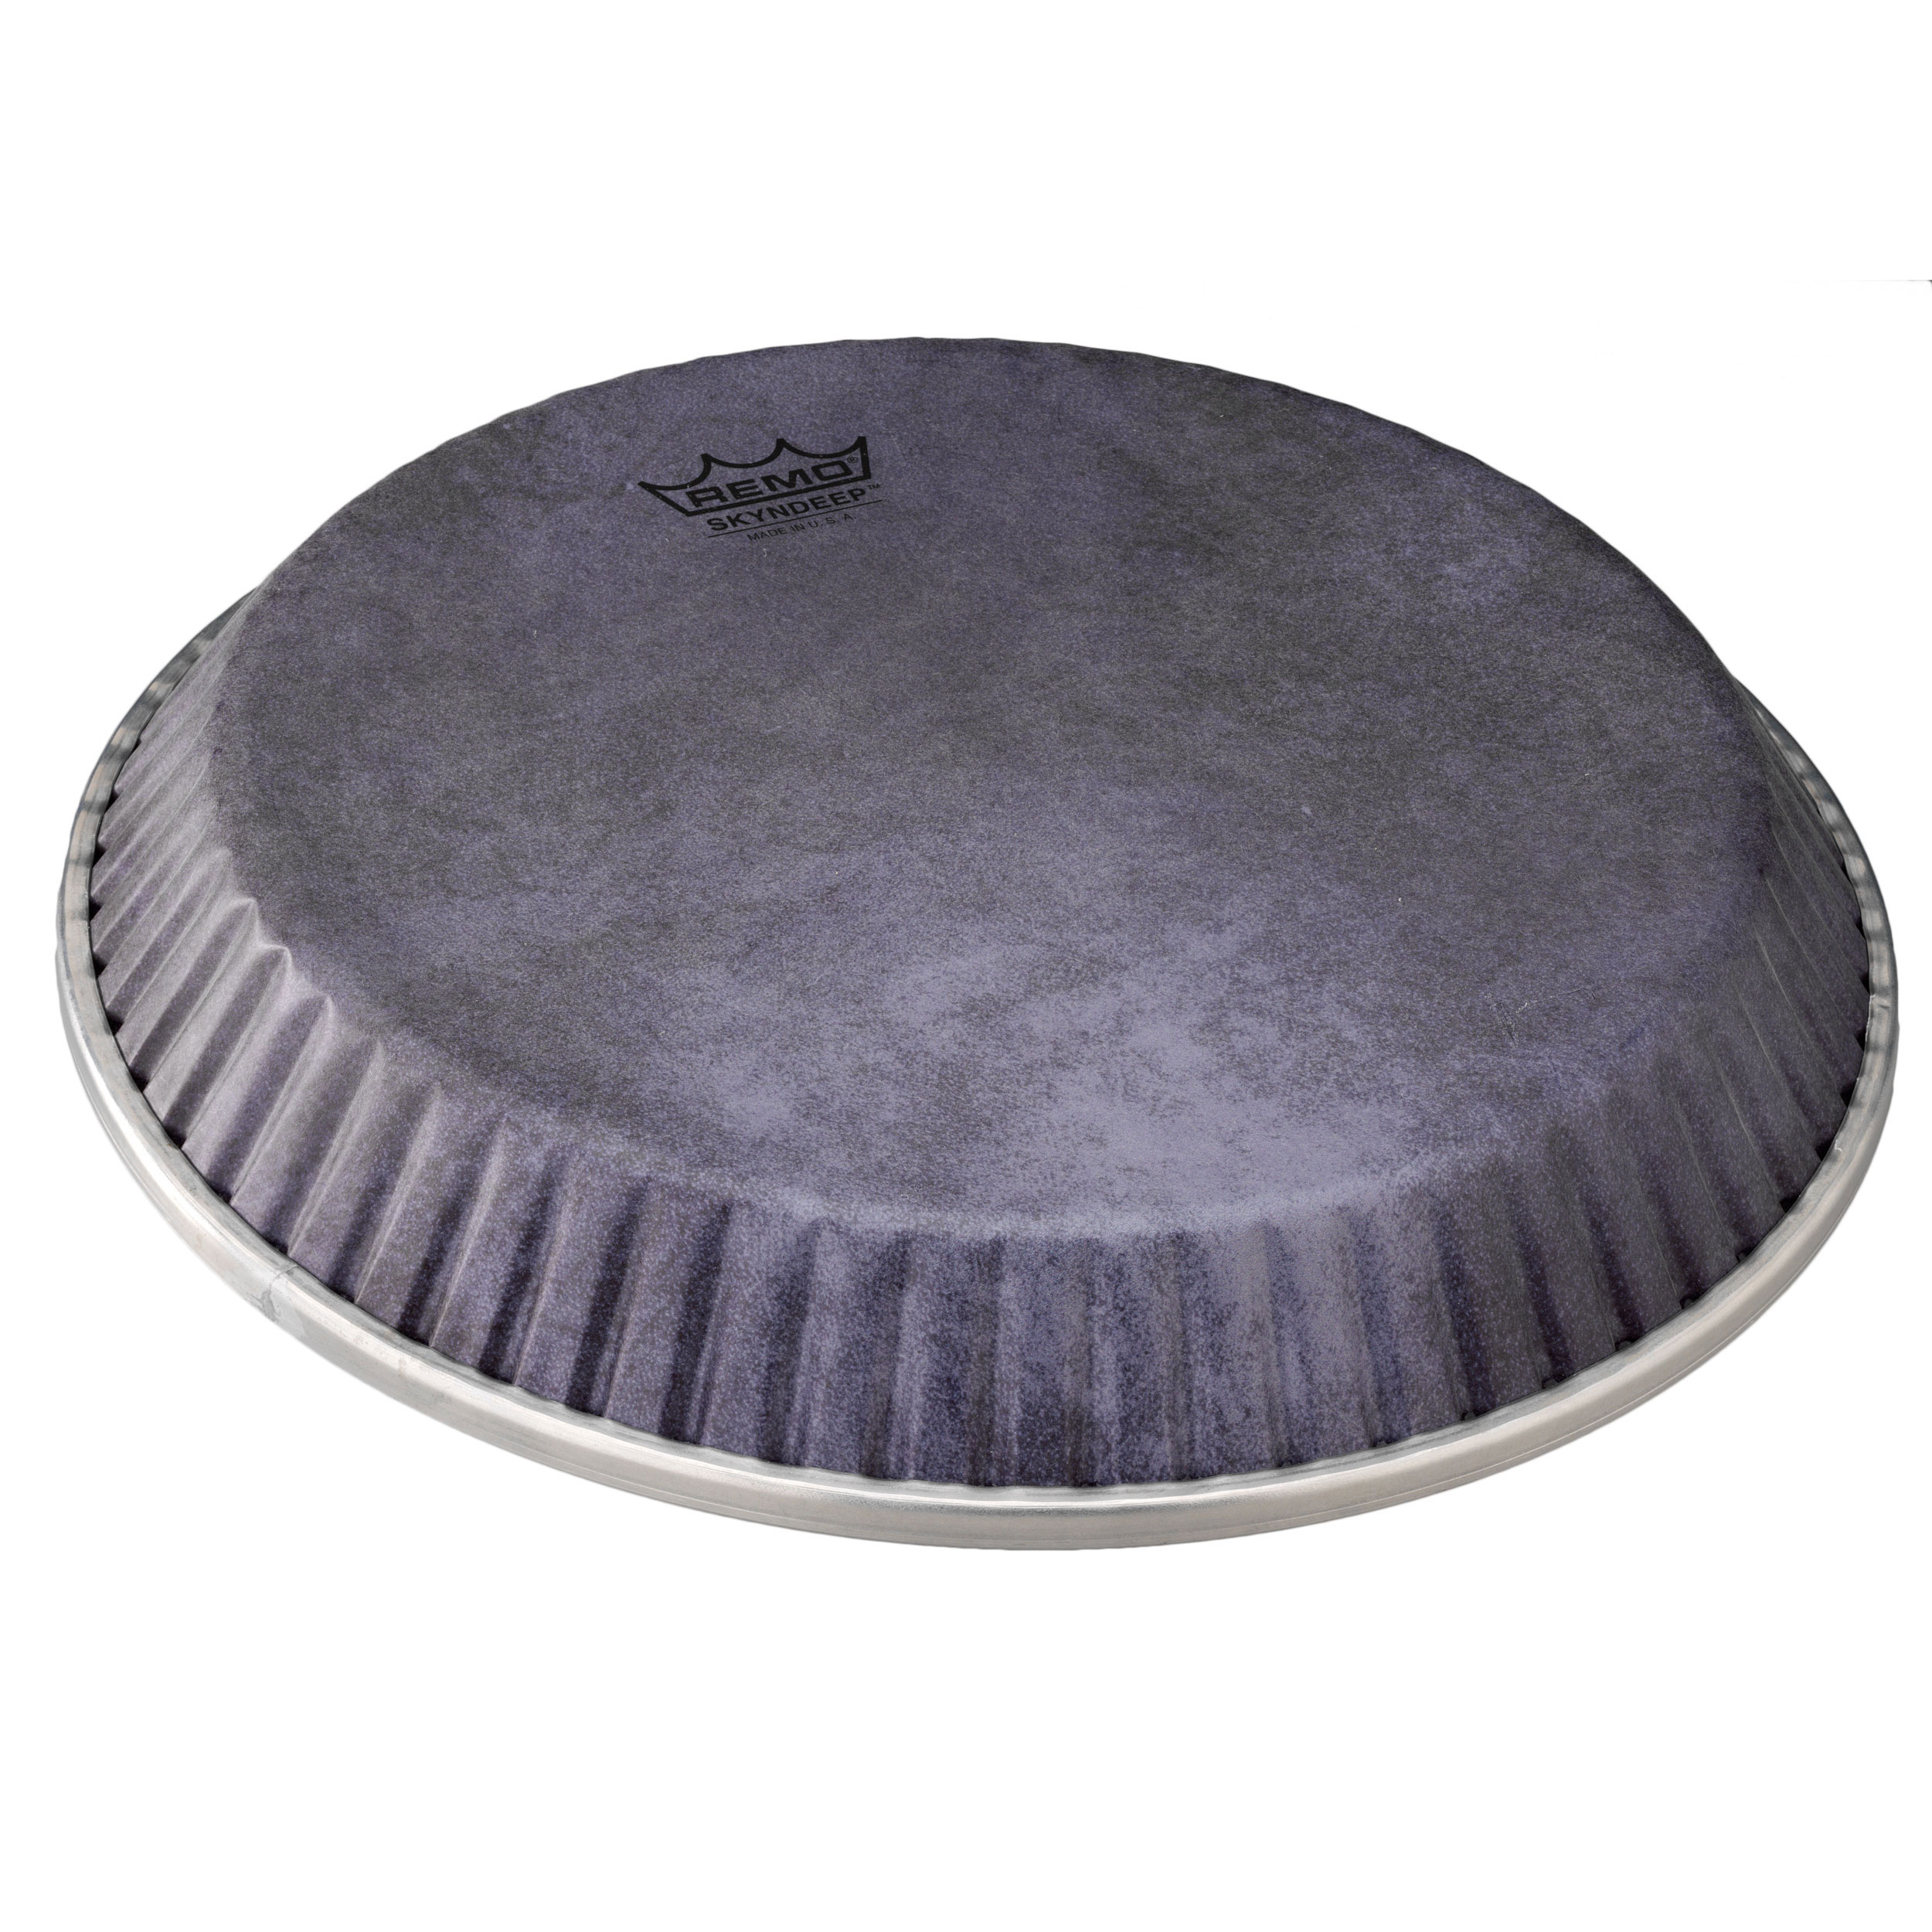 """Remo 11.06"""" Symmetry Skyndeep Conga Drum Head (D1 Collar) with Black Calfskin Graphic"""